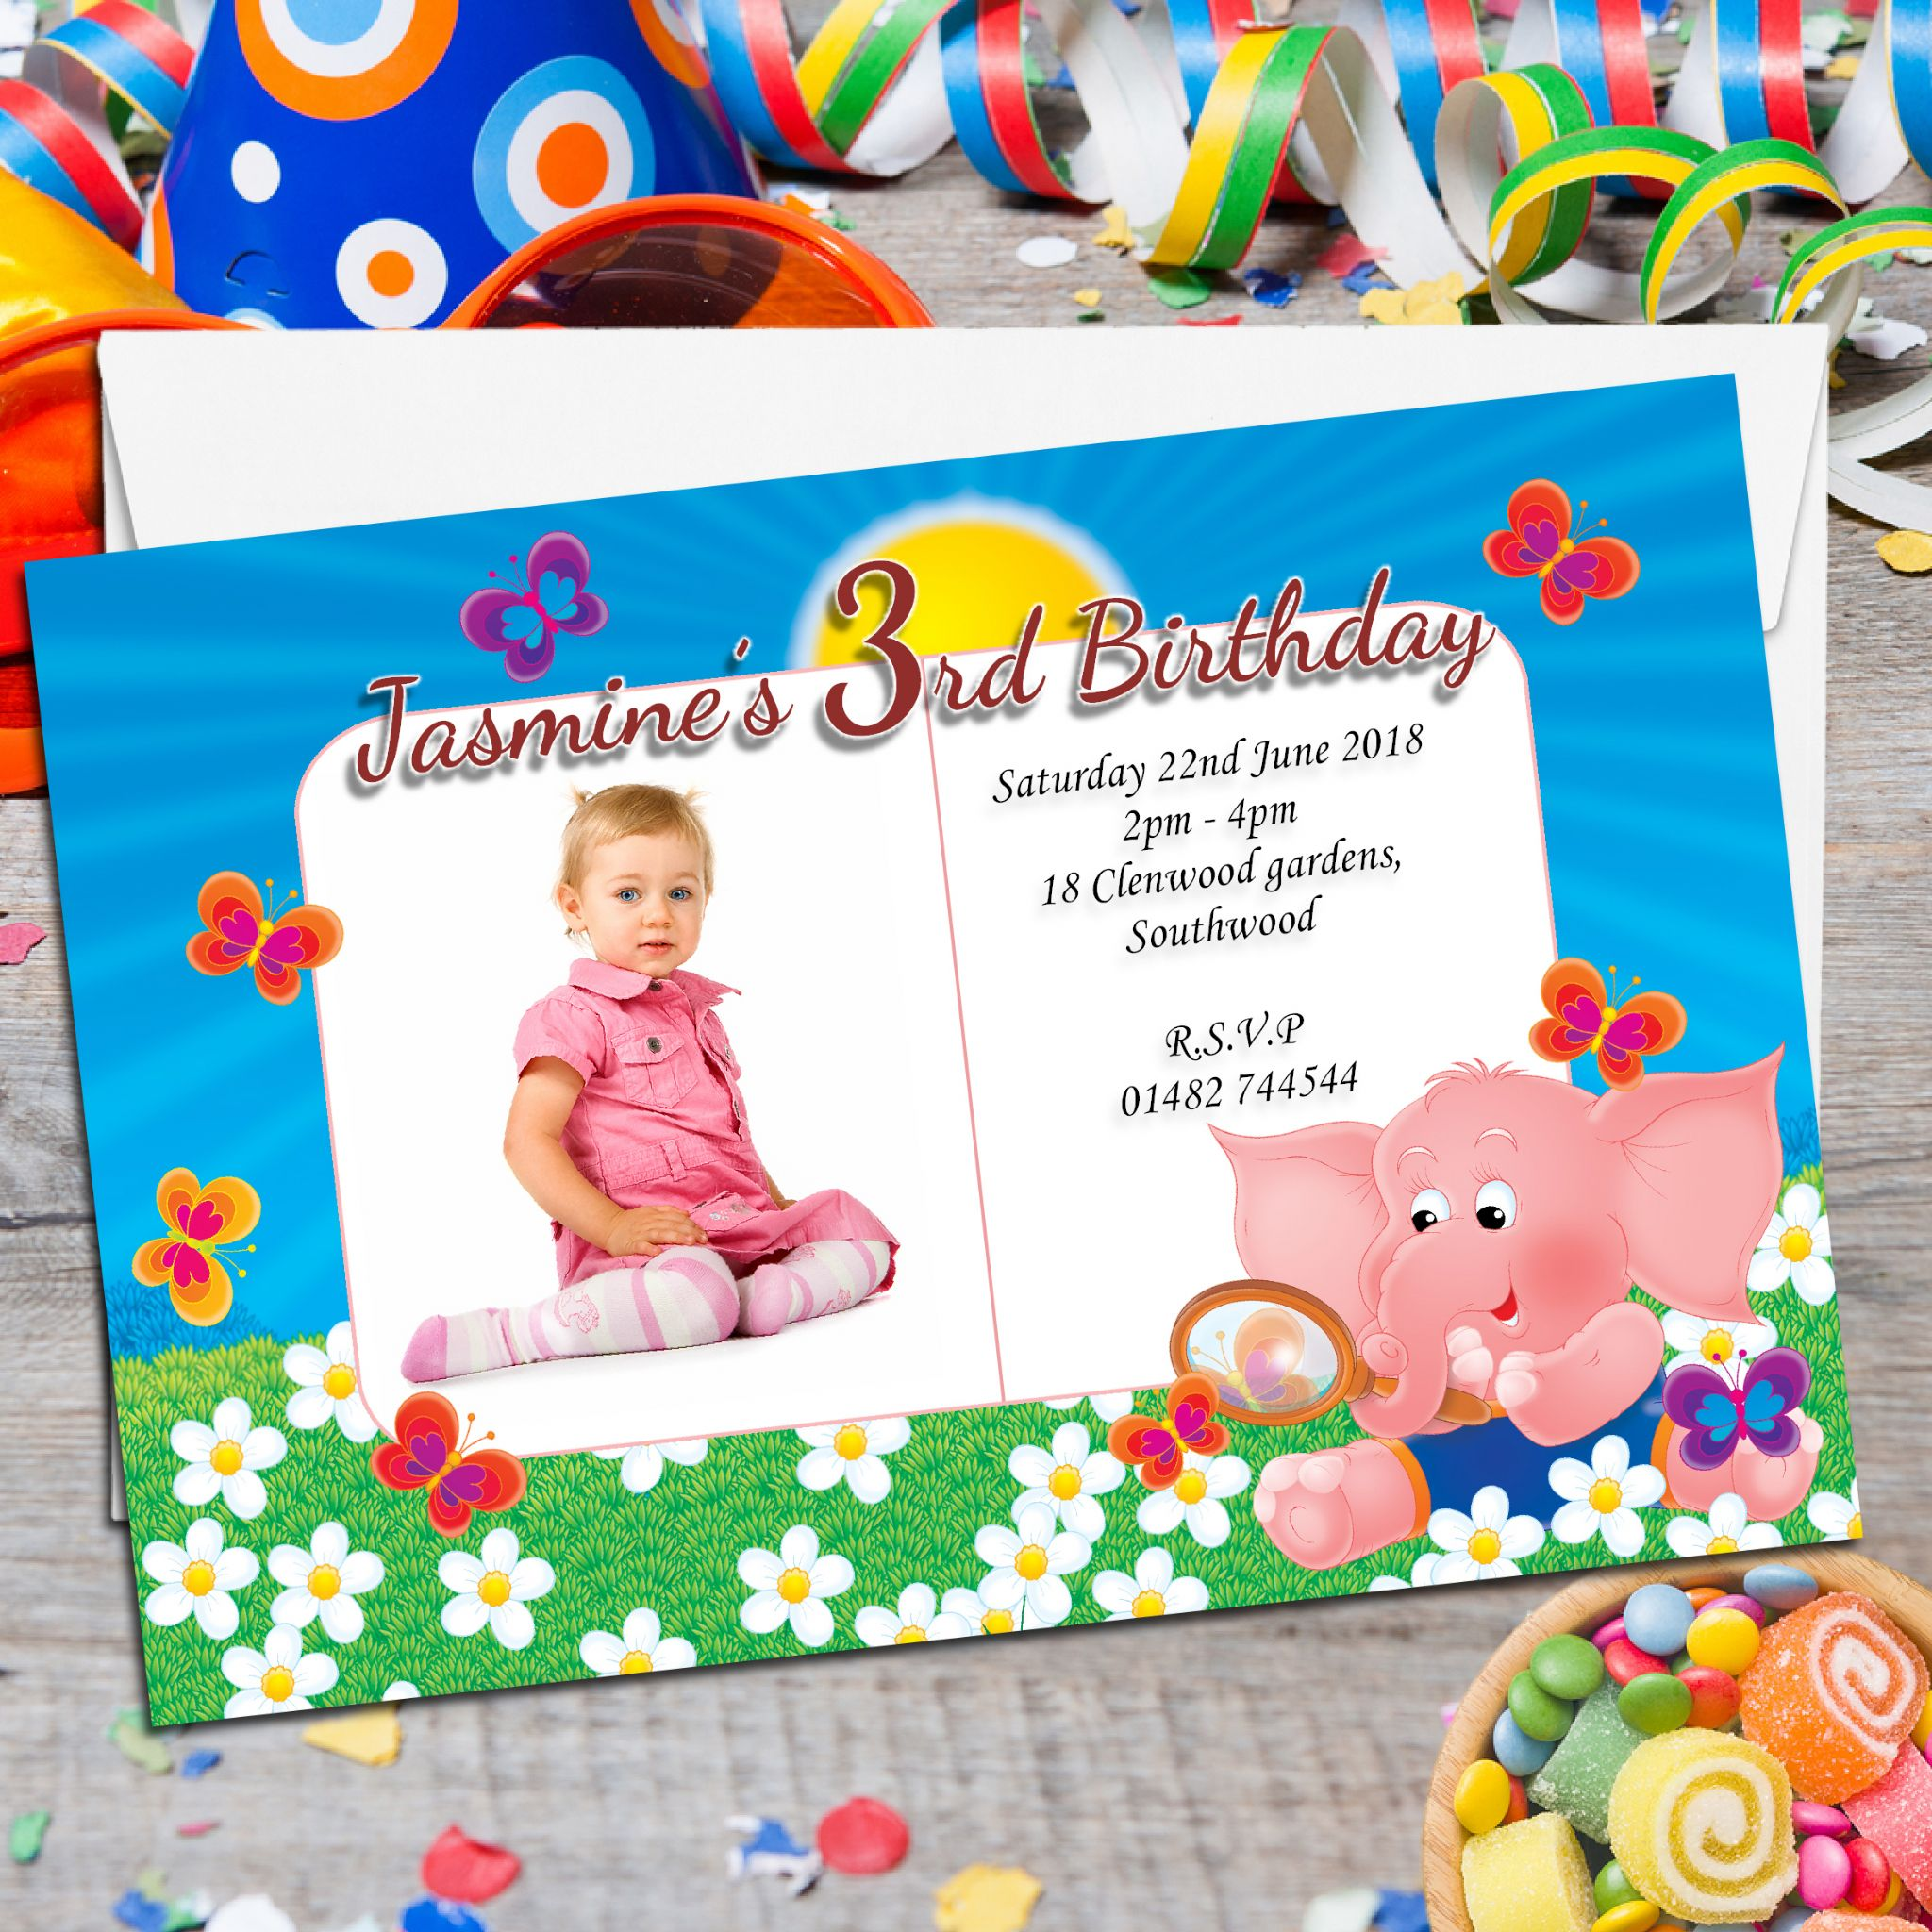 485 10 Personalised Baby Elephant Birthday Party Invitations N21 Variant Attributes